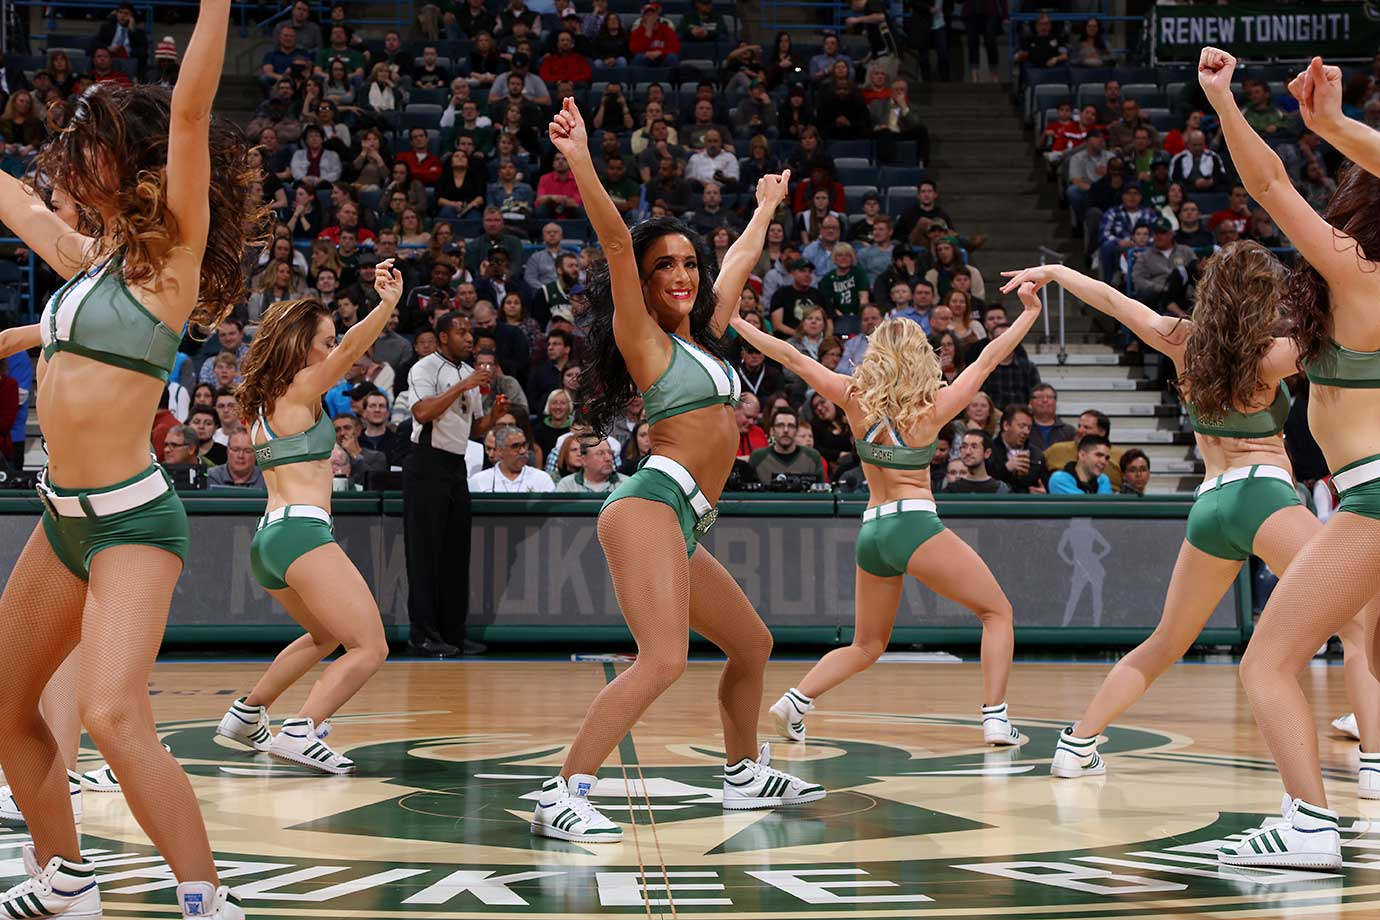 The Milwaukee Bucks dancers are seen during the game against the Charlotte Hornets.